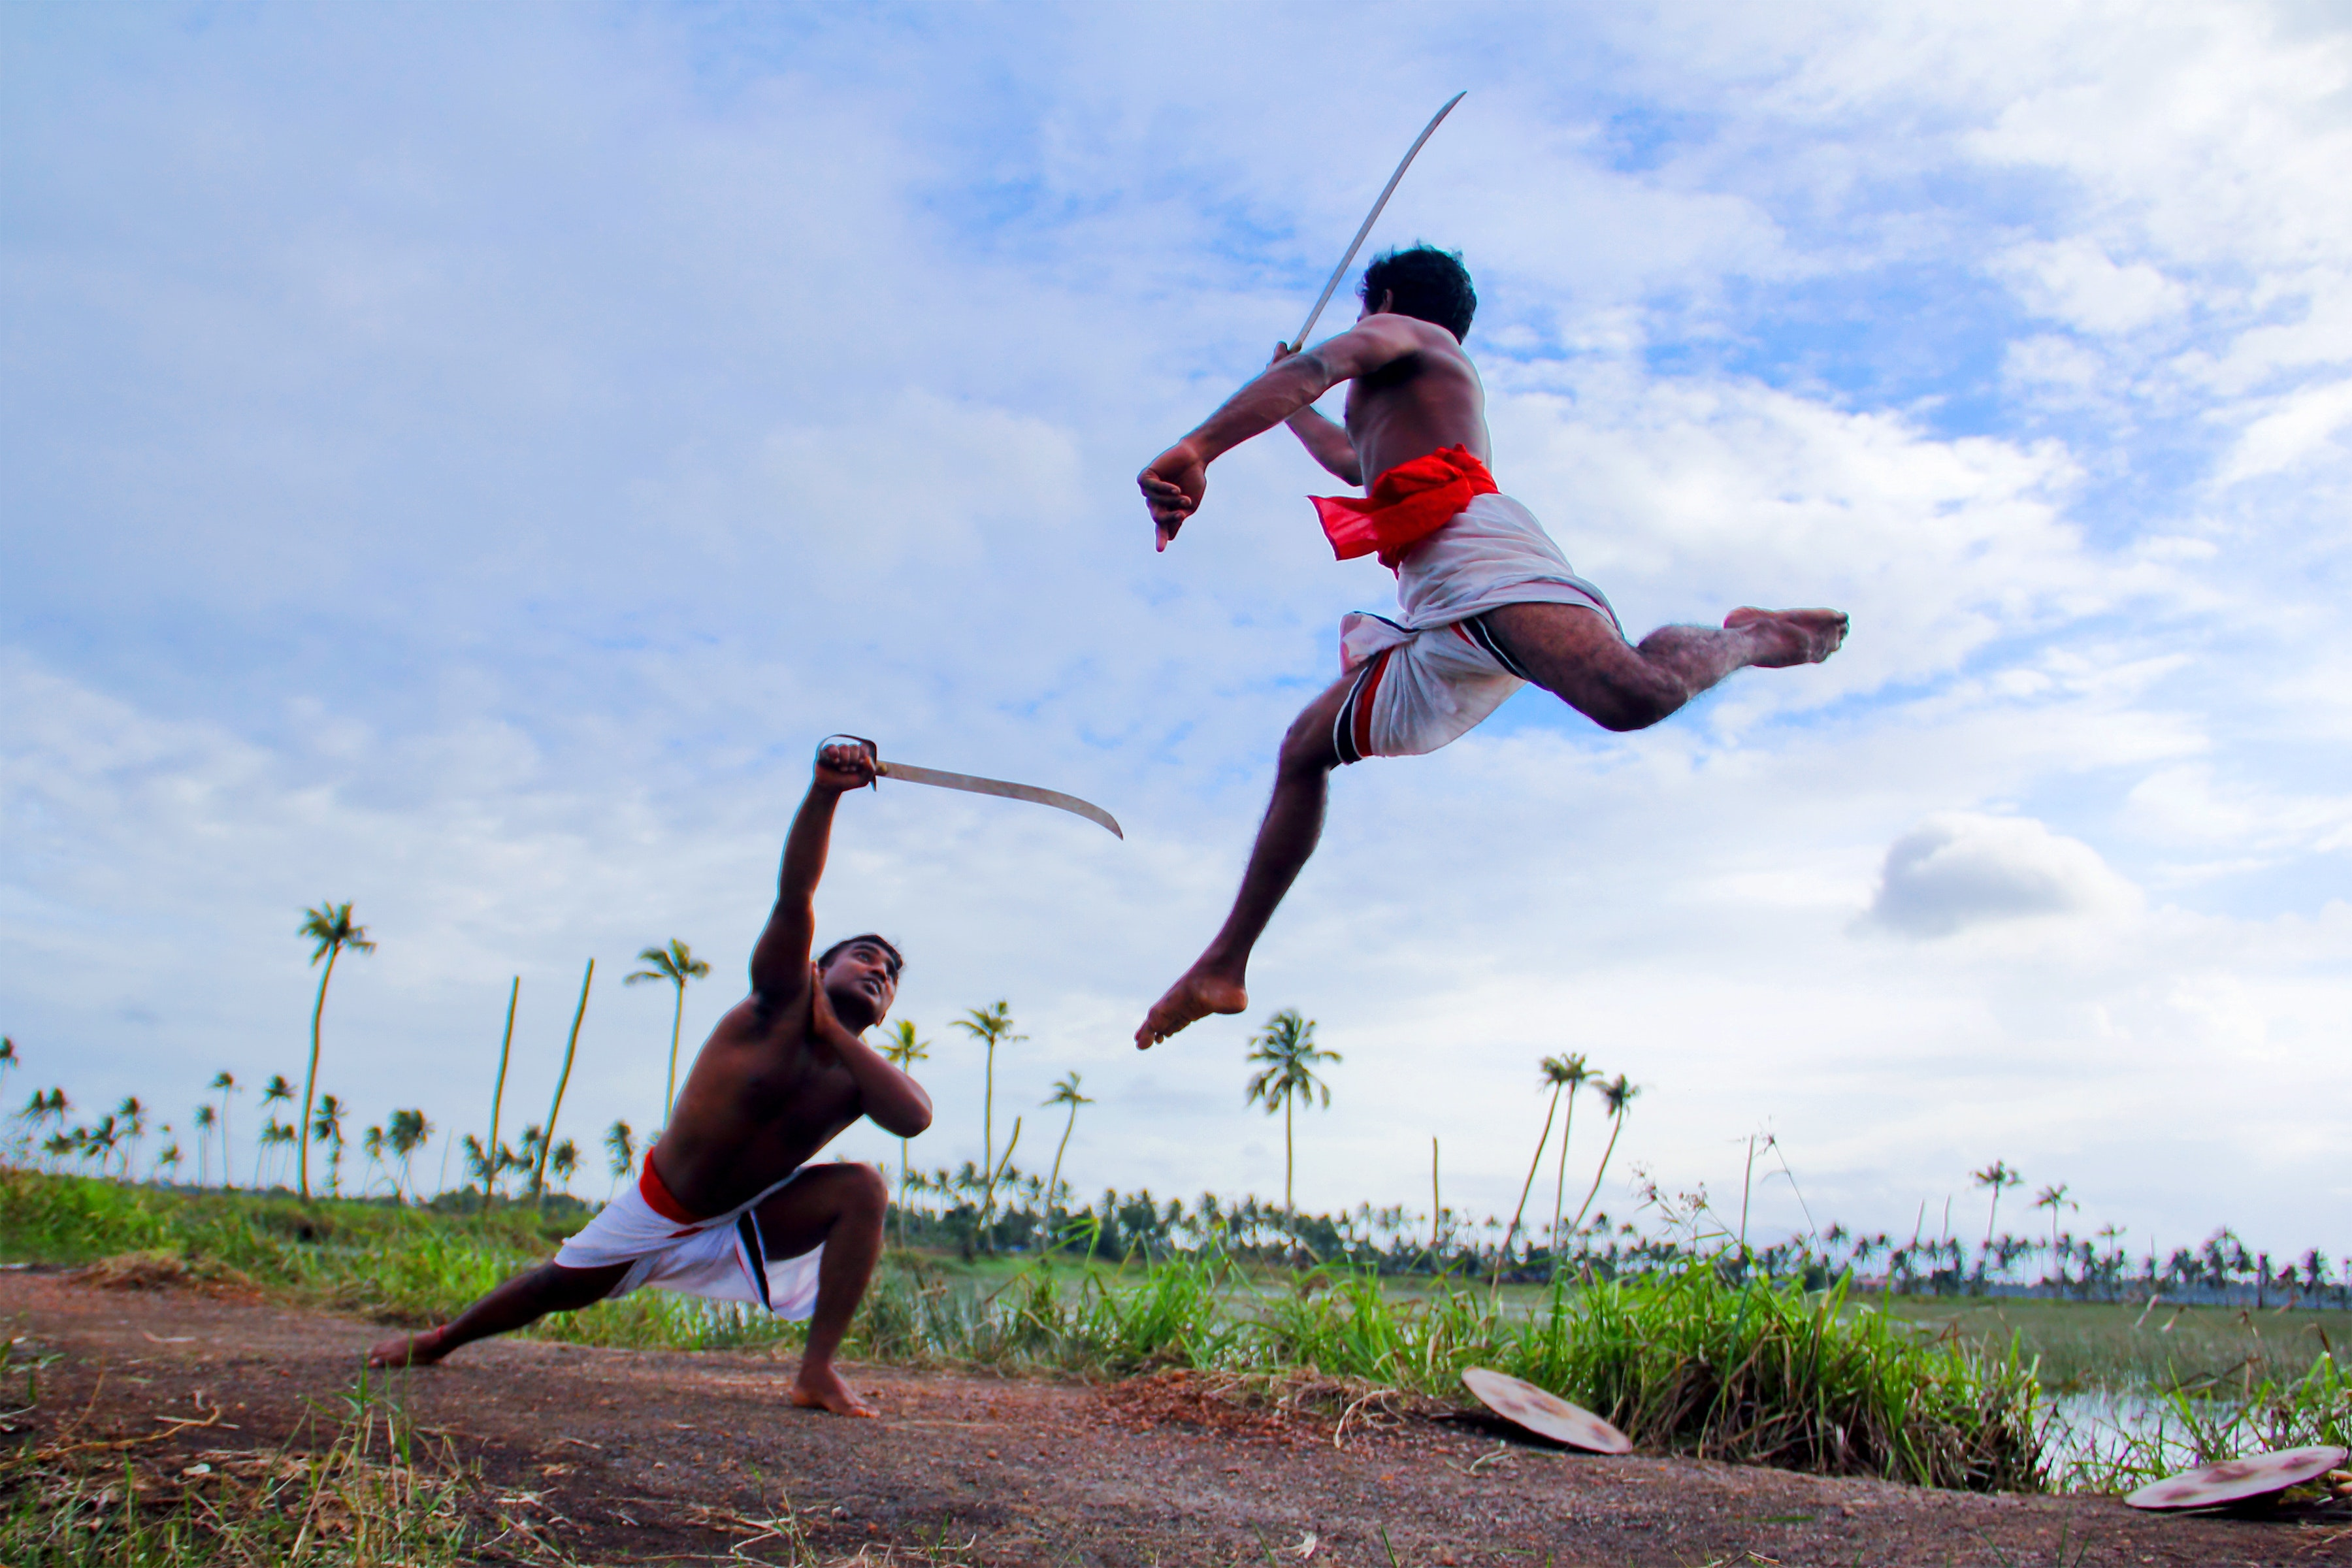 Two Man in White Shorts Fighting Using Sword during Daytime, India, People, Sport, Swords, HQ Photo